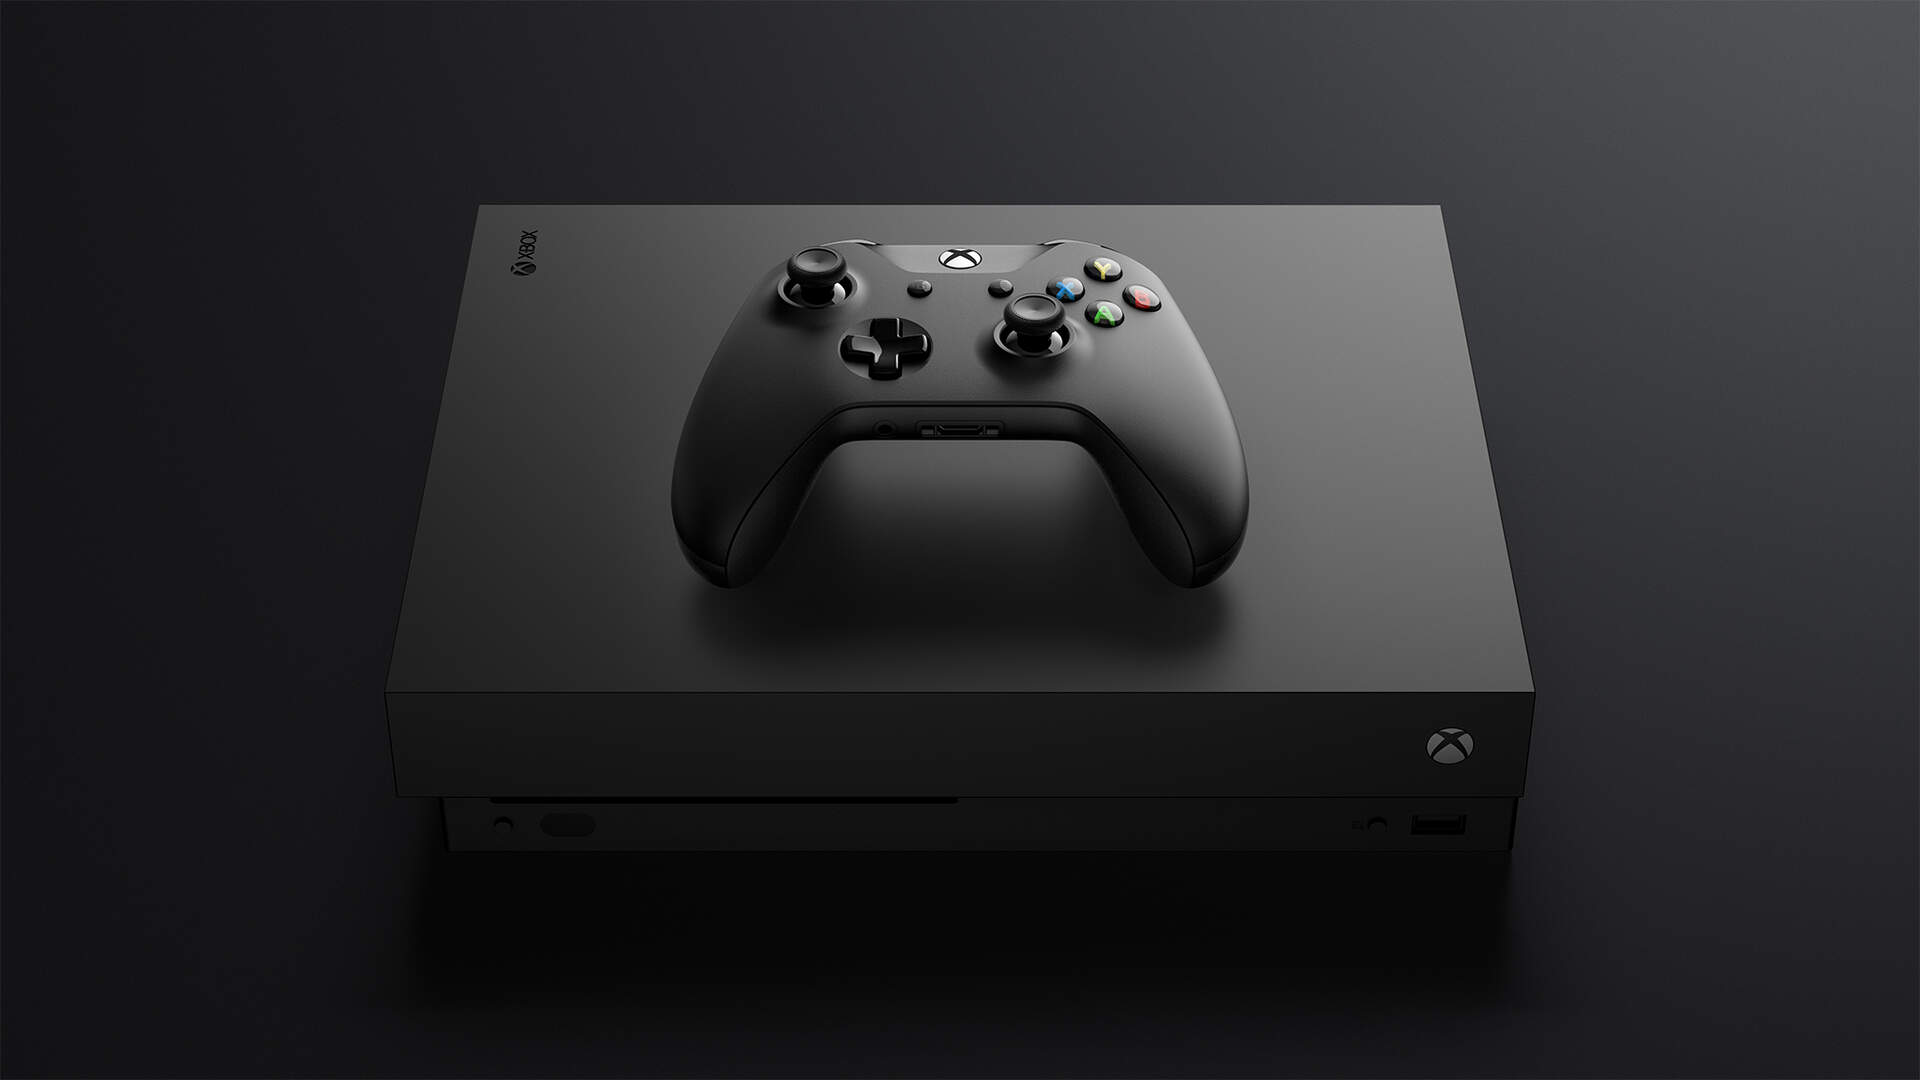 What You Need to Know About the Strange Xbox Live Login Error Affecting Xbox One Owners